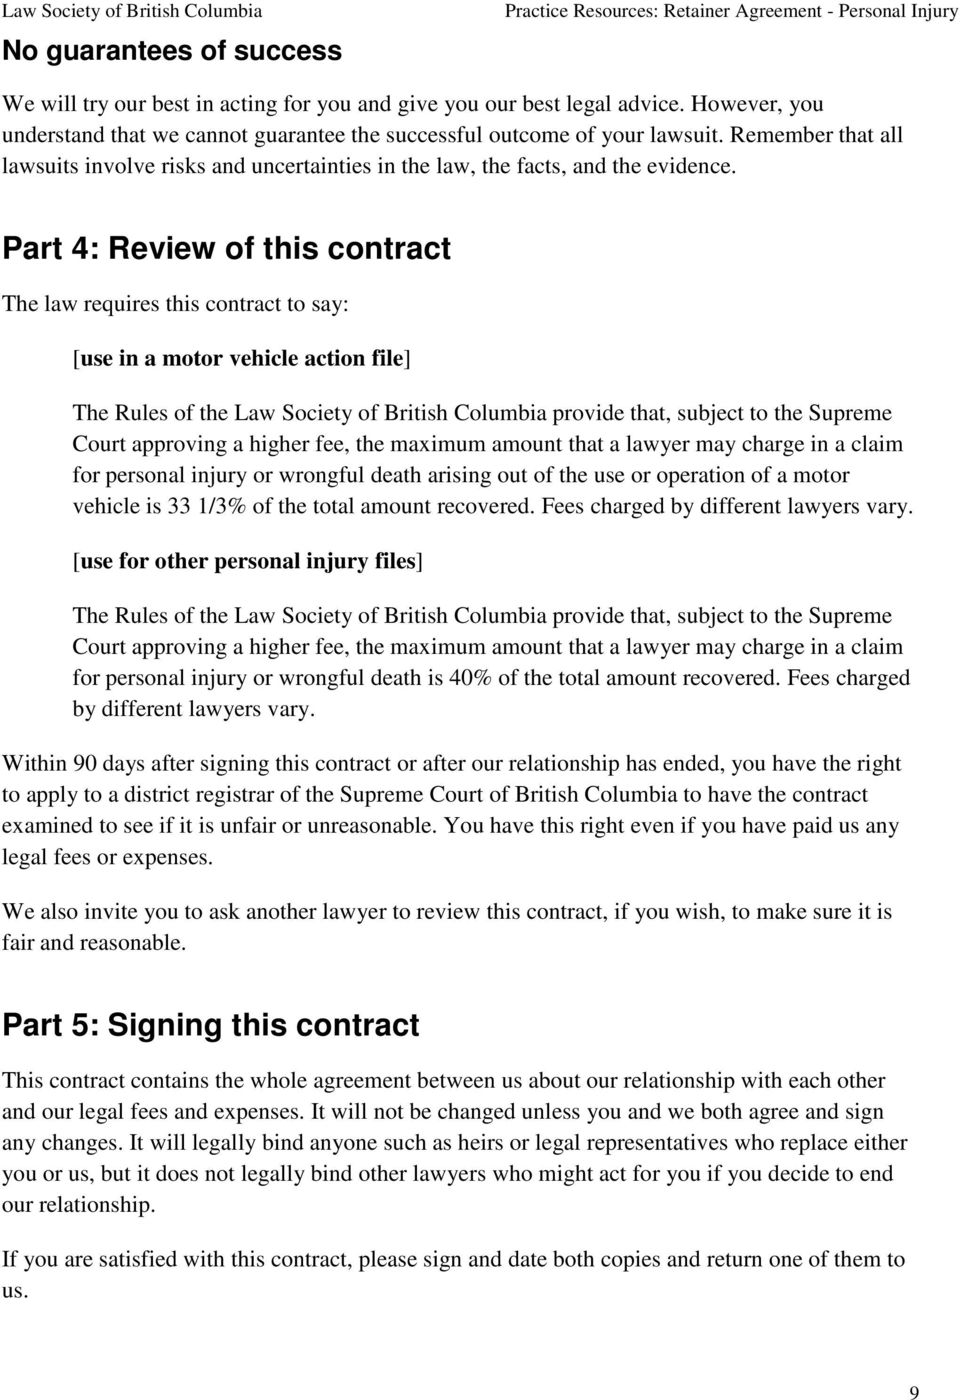 Part 4: Review of this contract The law requires this contract to say: [use in a motor vehicle action file] The Rules of the Law Society of British Columbia provide that, subject to the Supreme Court